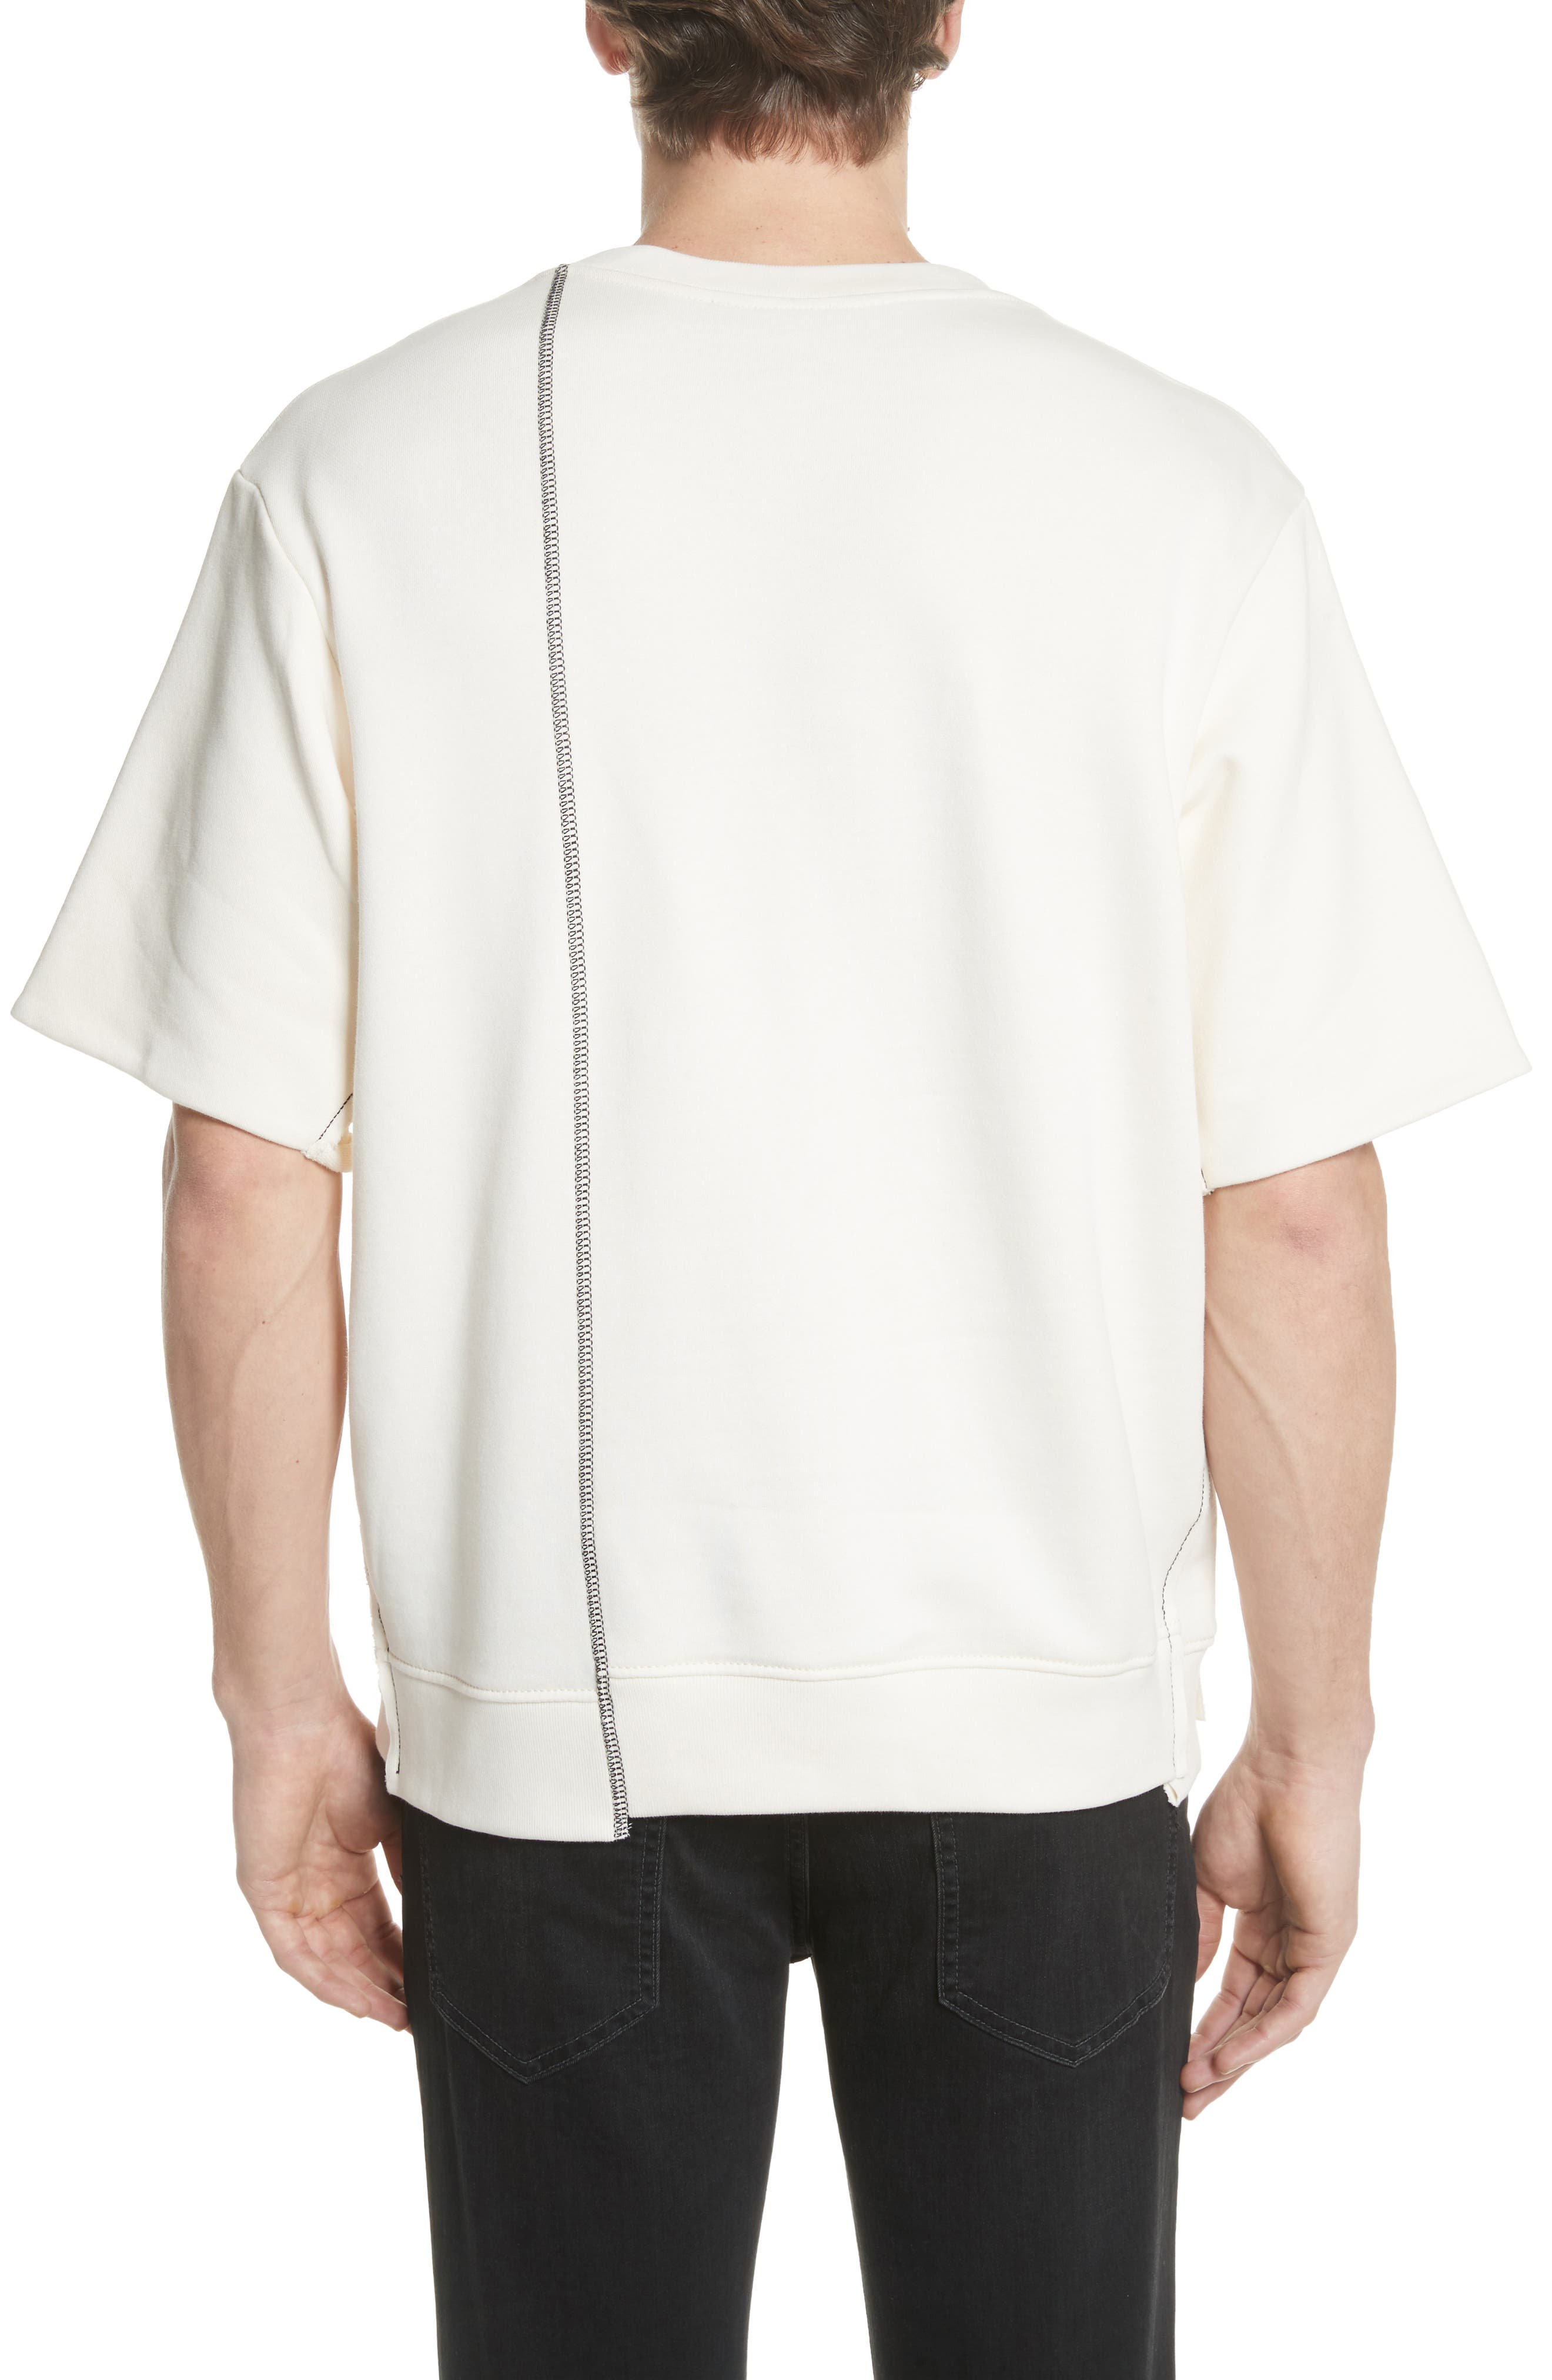 Reconstructed Short Sleeve Sweatshirt,                             Alternate thumbnail 2, color,                             250